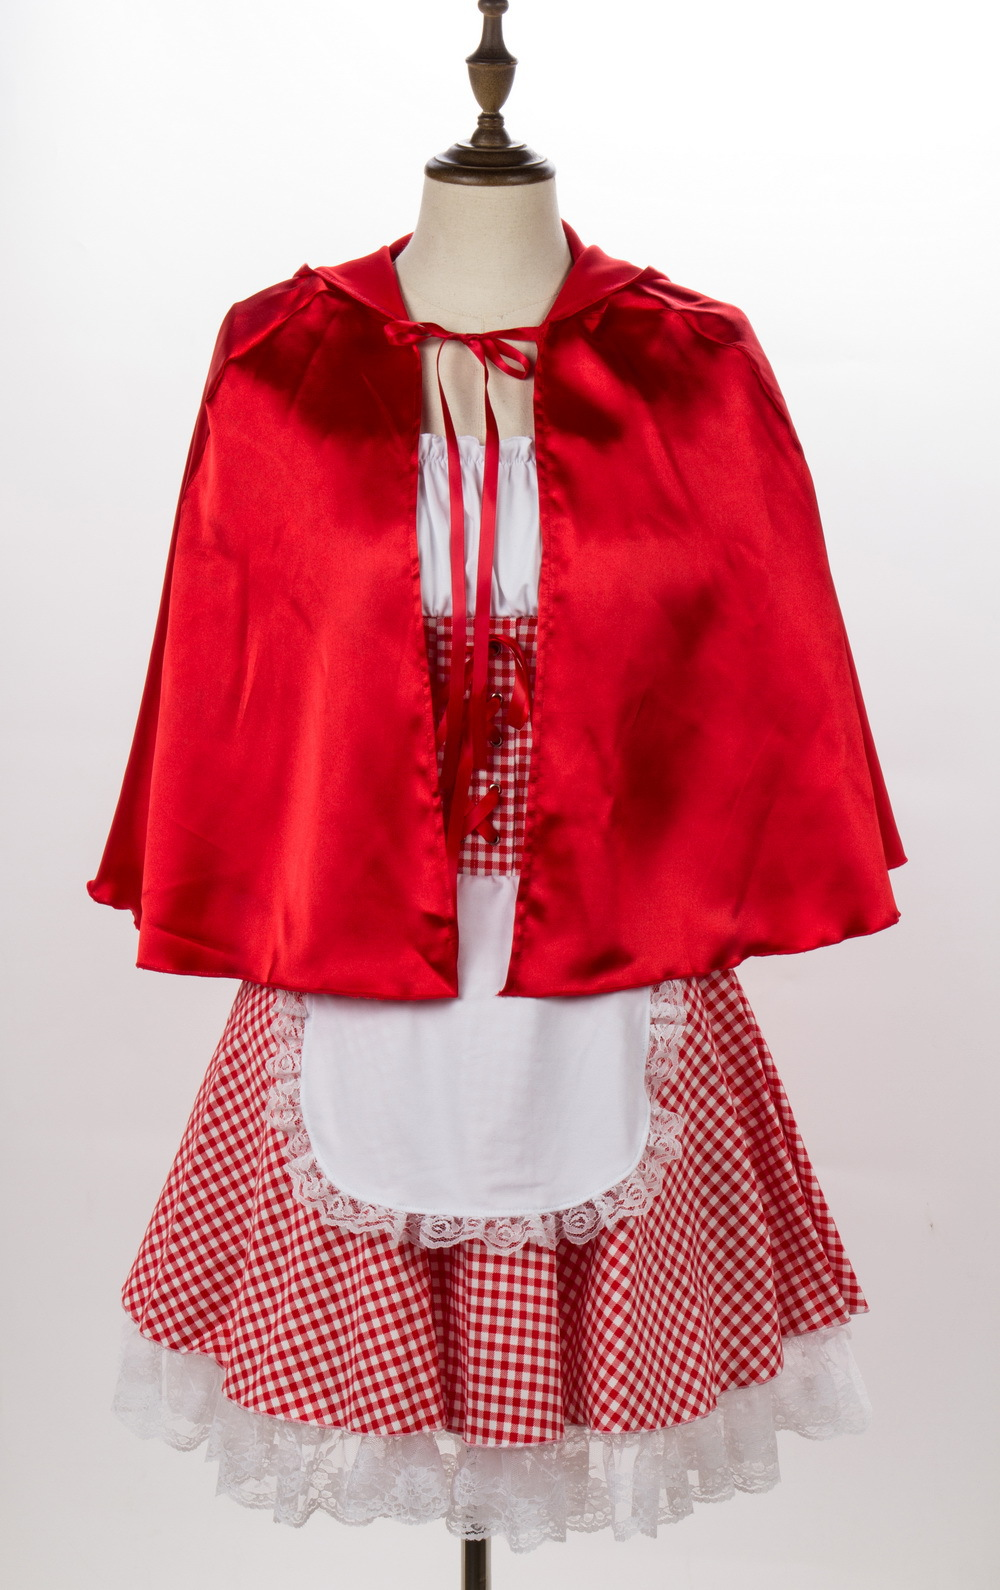 Women Copaly Dress Suit Plaid with Lace Decoration for Halloween Beer Festival  red_L